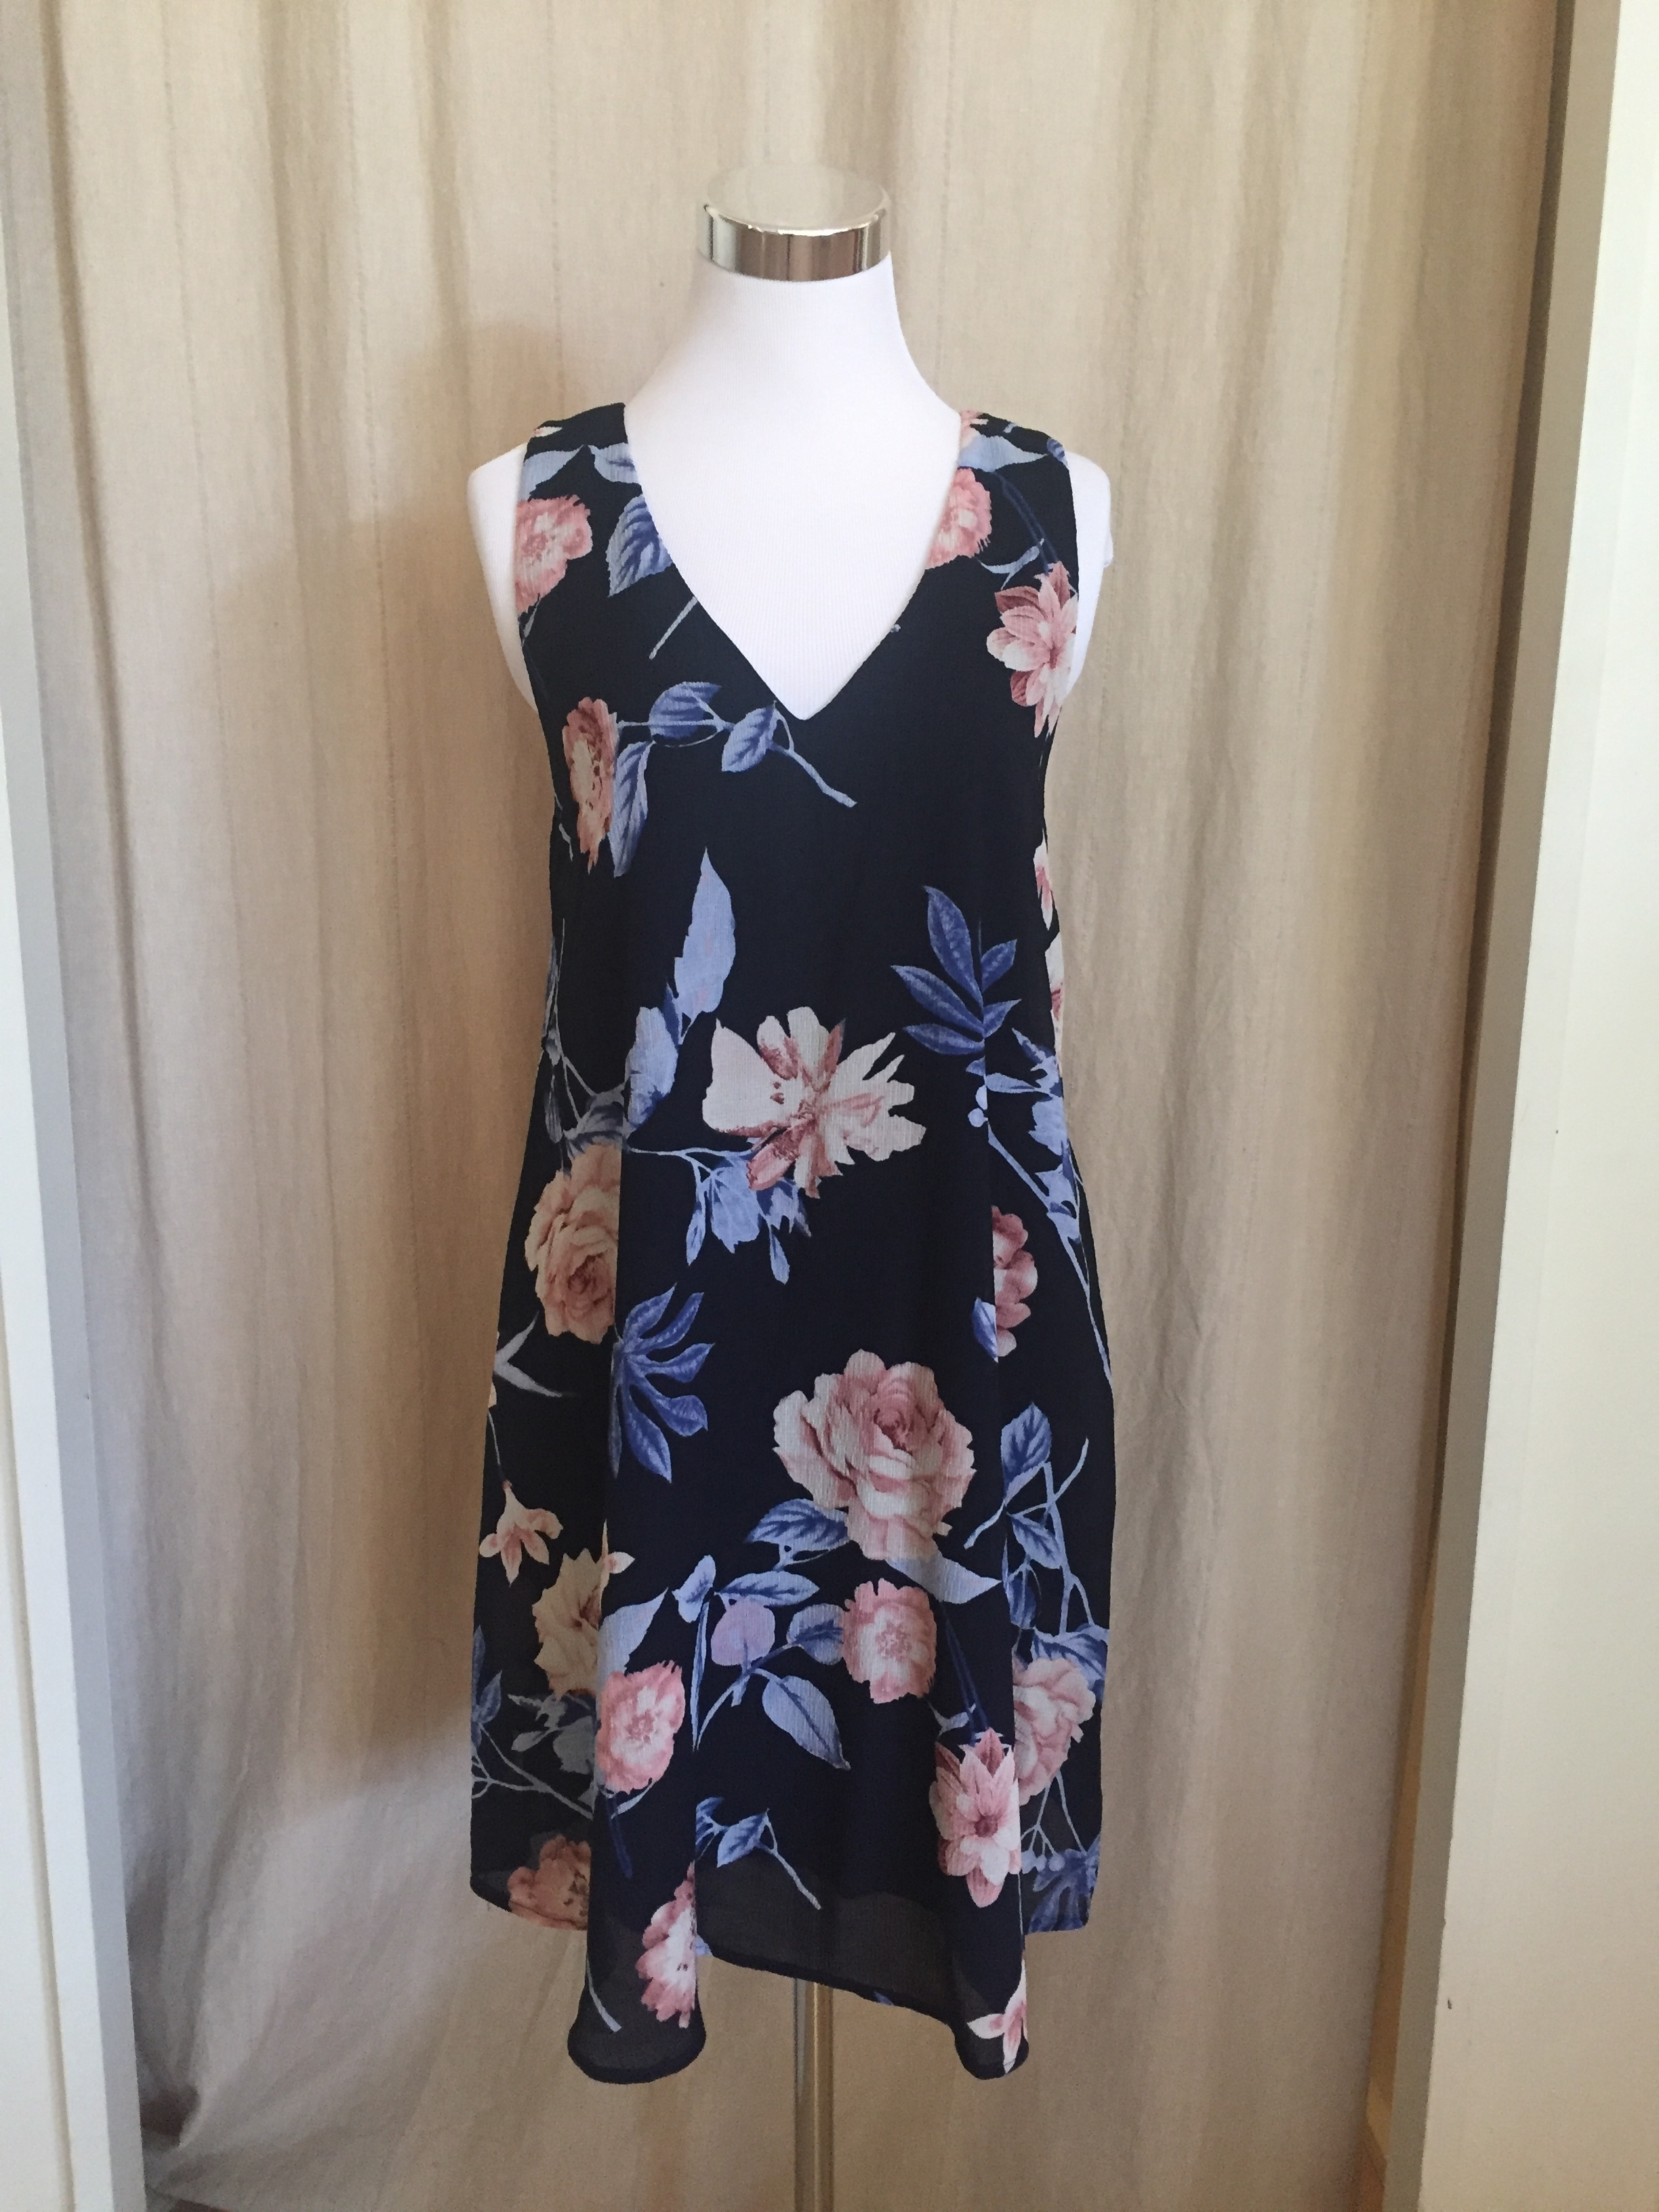 Strappy Back Floral Dress, $45